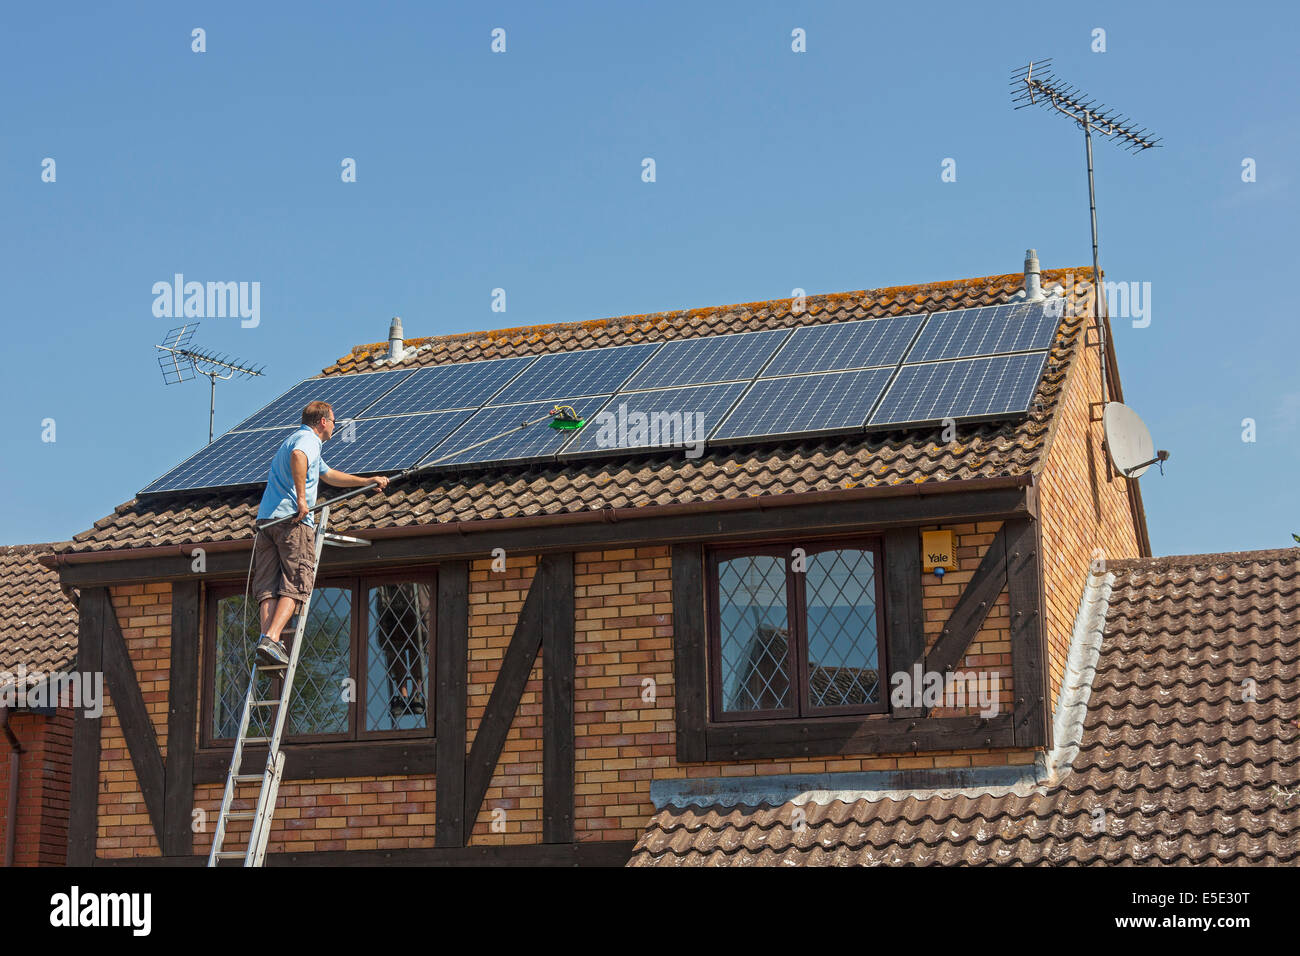 Cleaning accumulated dirt, grime and bird droppings from rooftop Photovoltaic (PV) solar panels. JMH6247 - Stock Image